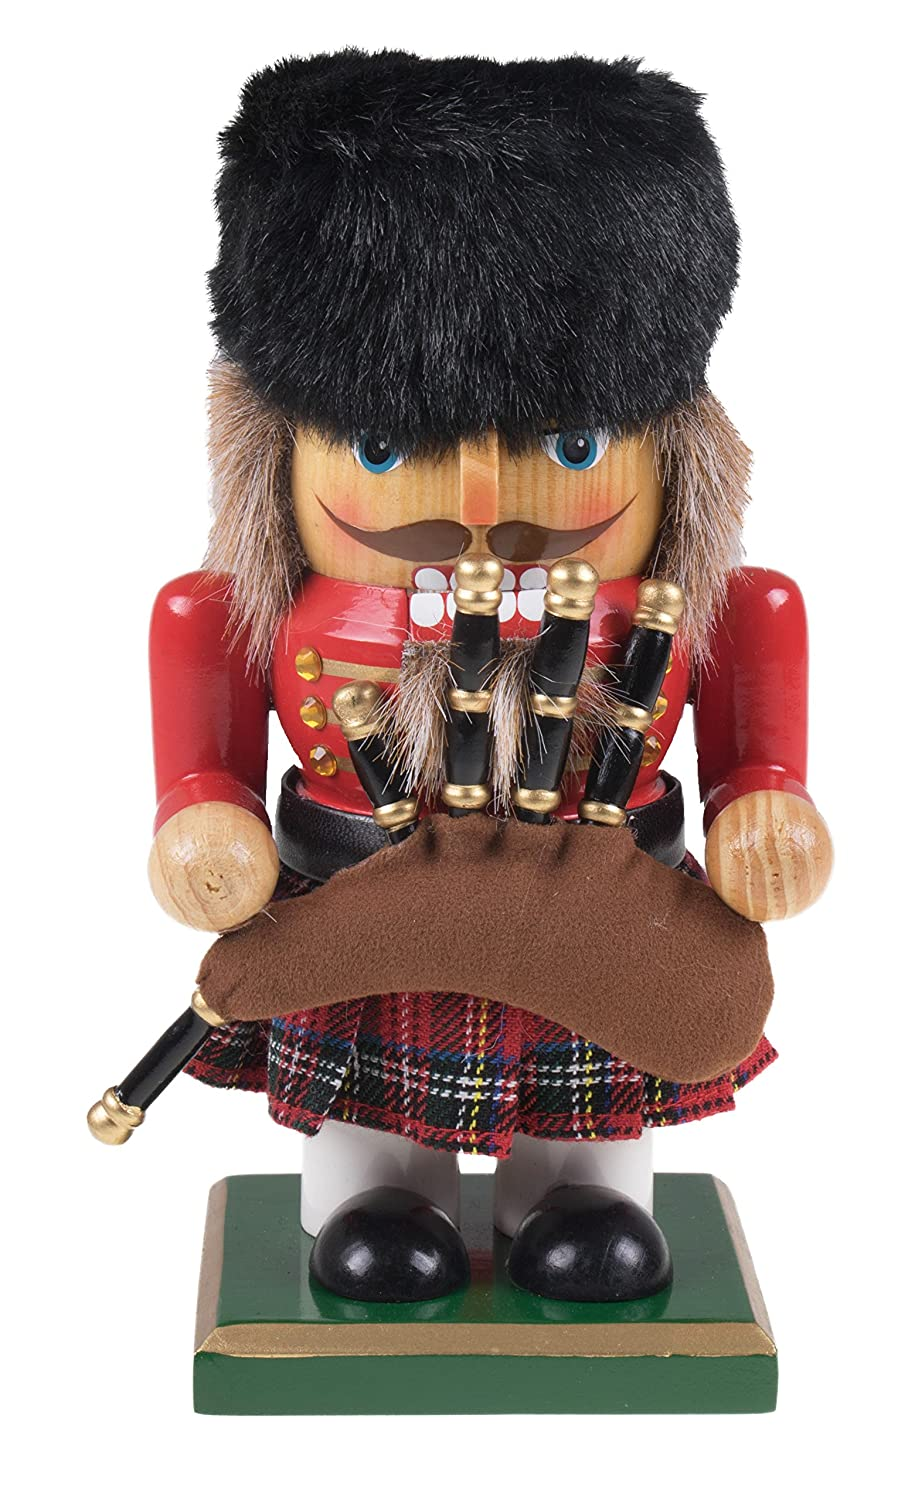 "Classic Chubby Scottish Nutcracker with Bagpipes by Clever Creations | Plaid Kilt, Beaver Hat and Bagpipes | Festive Collectable Decor | Perfect for Shelves and Tables | 100% Wood | 7"" Tall"